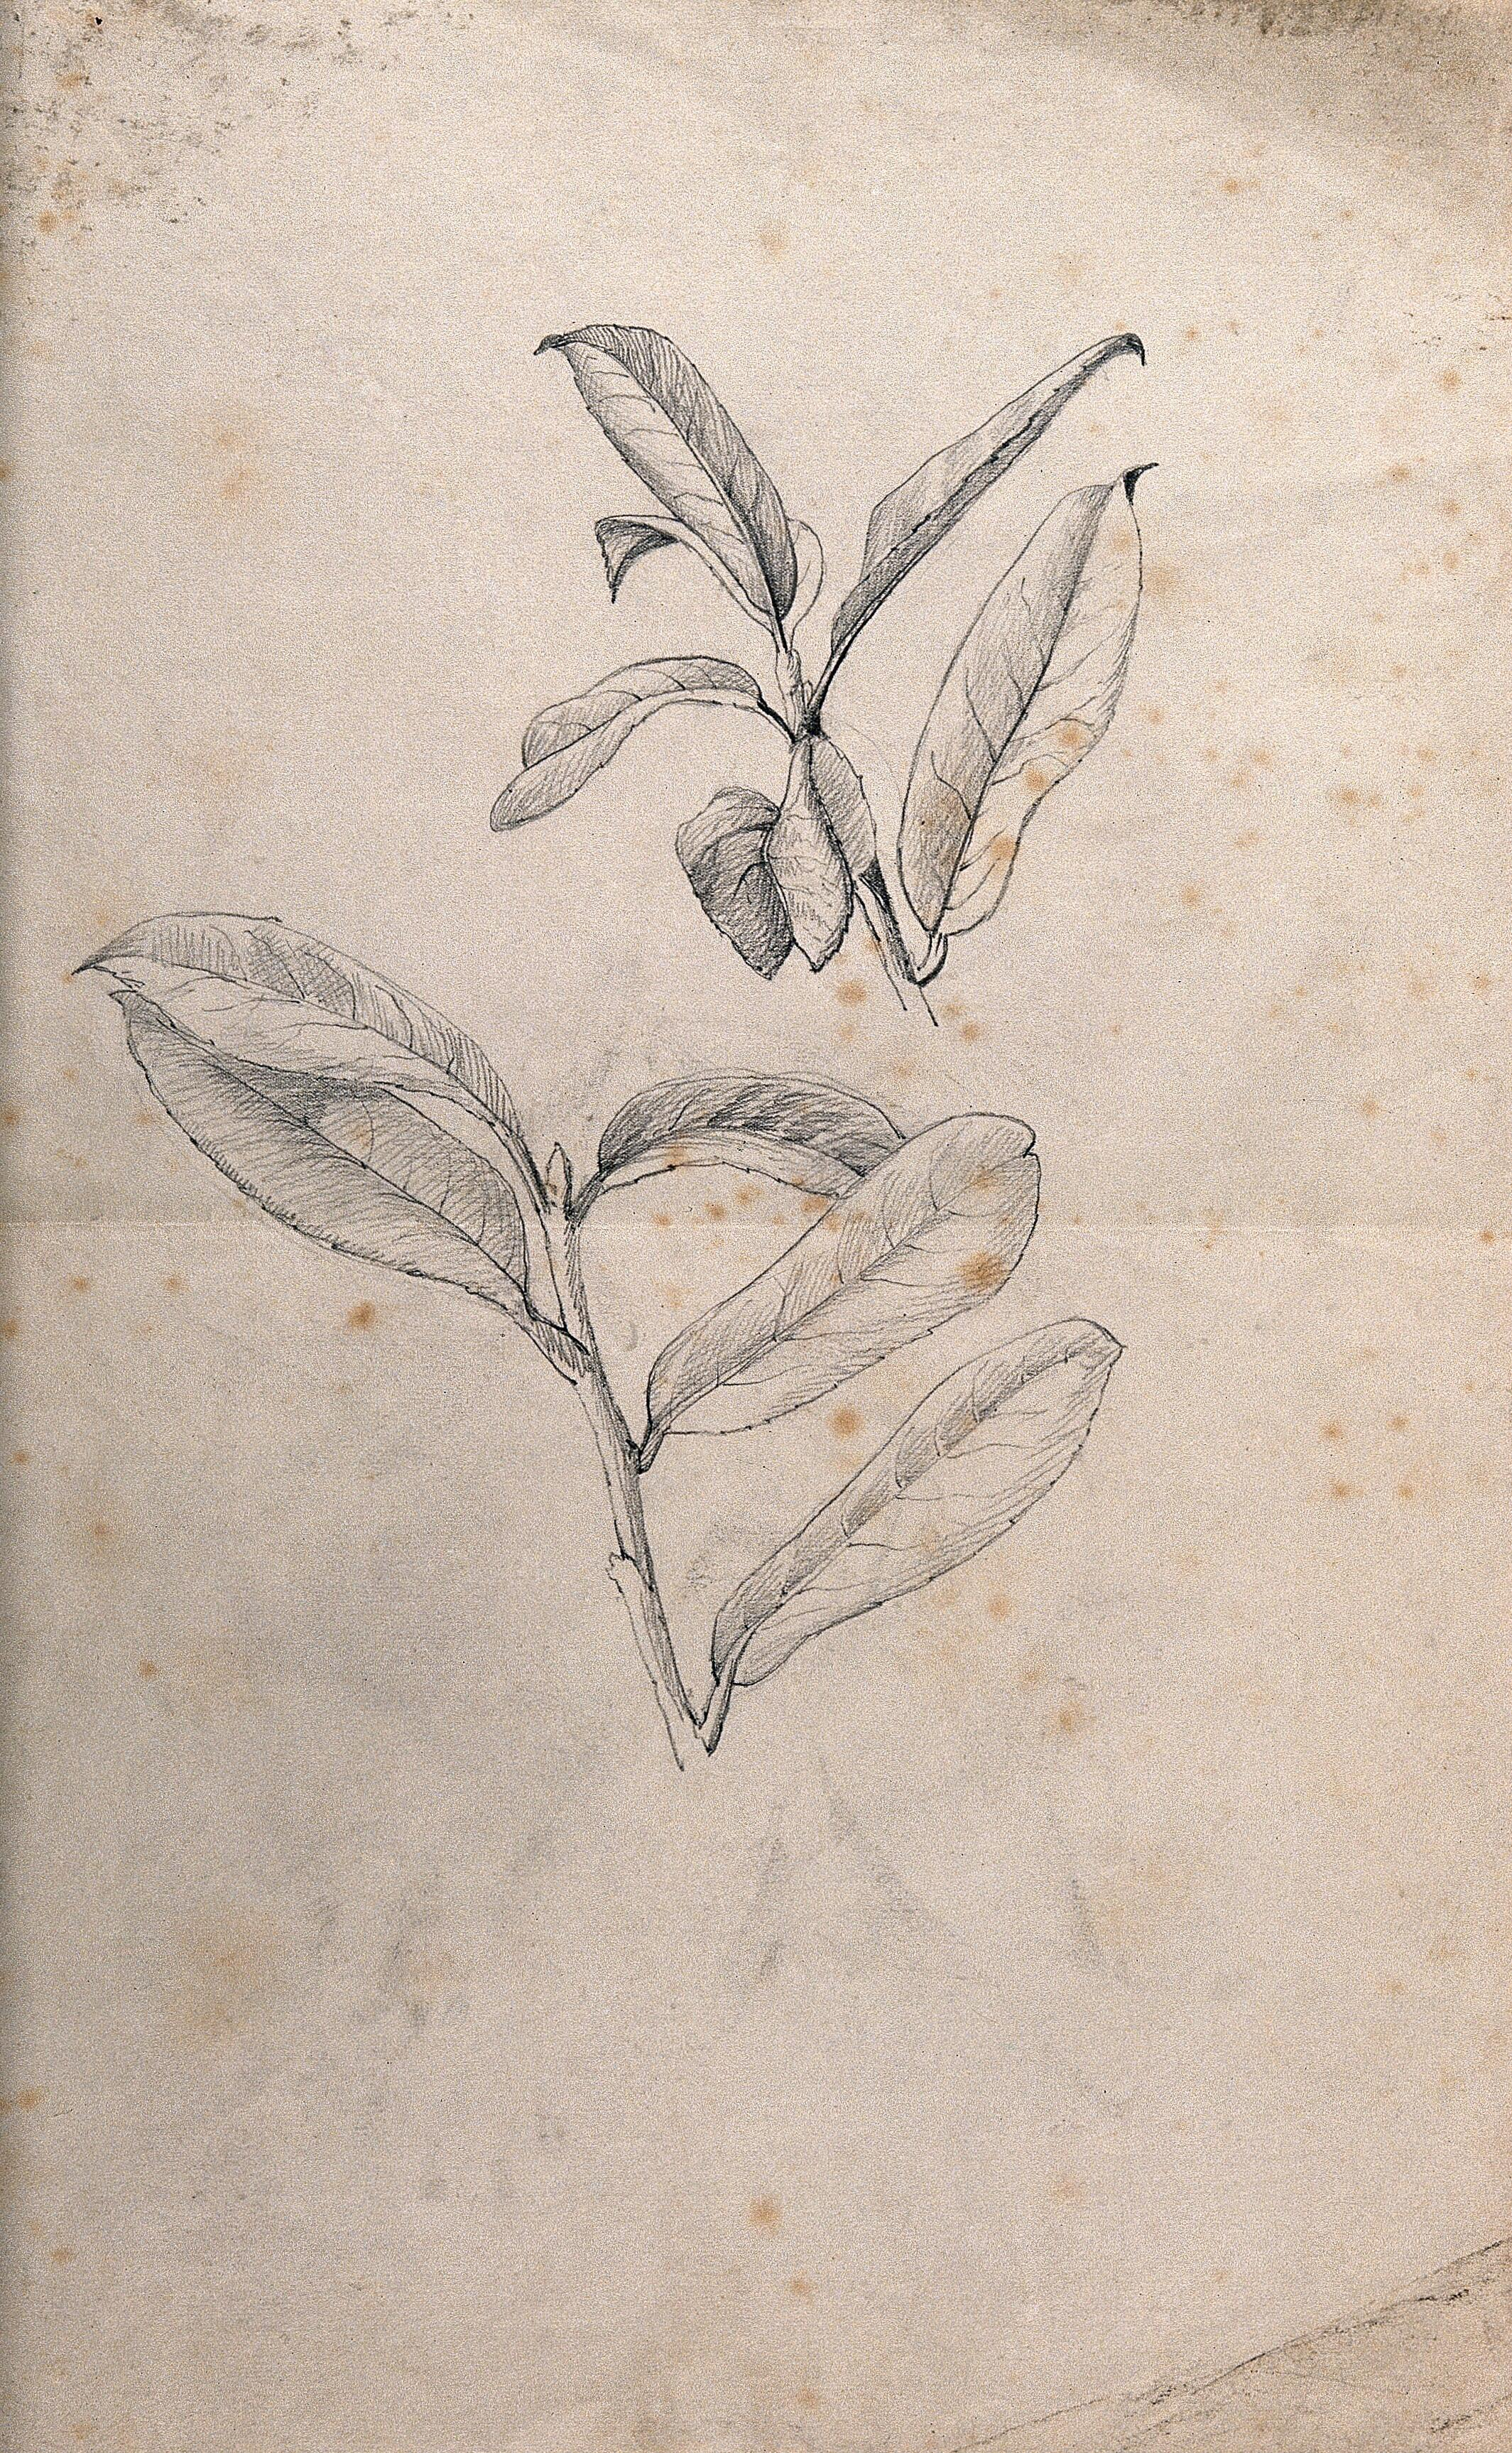 Leaves of a plant pencil drawing by j mongrédien ca 1880